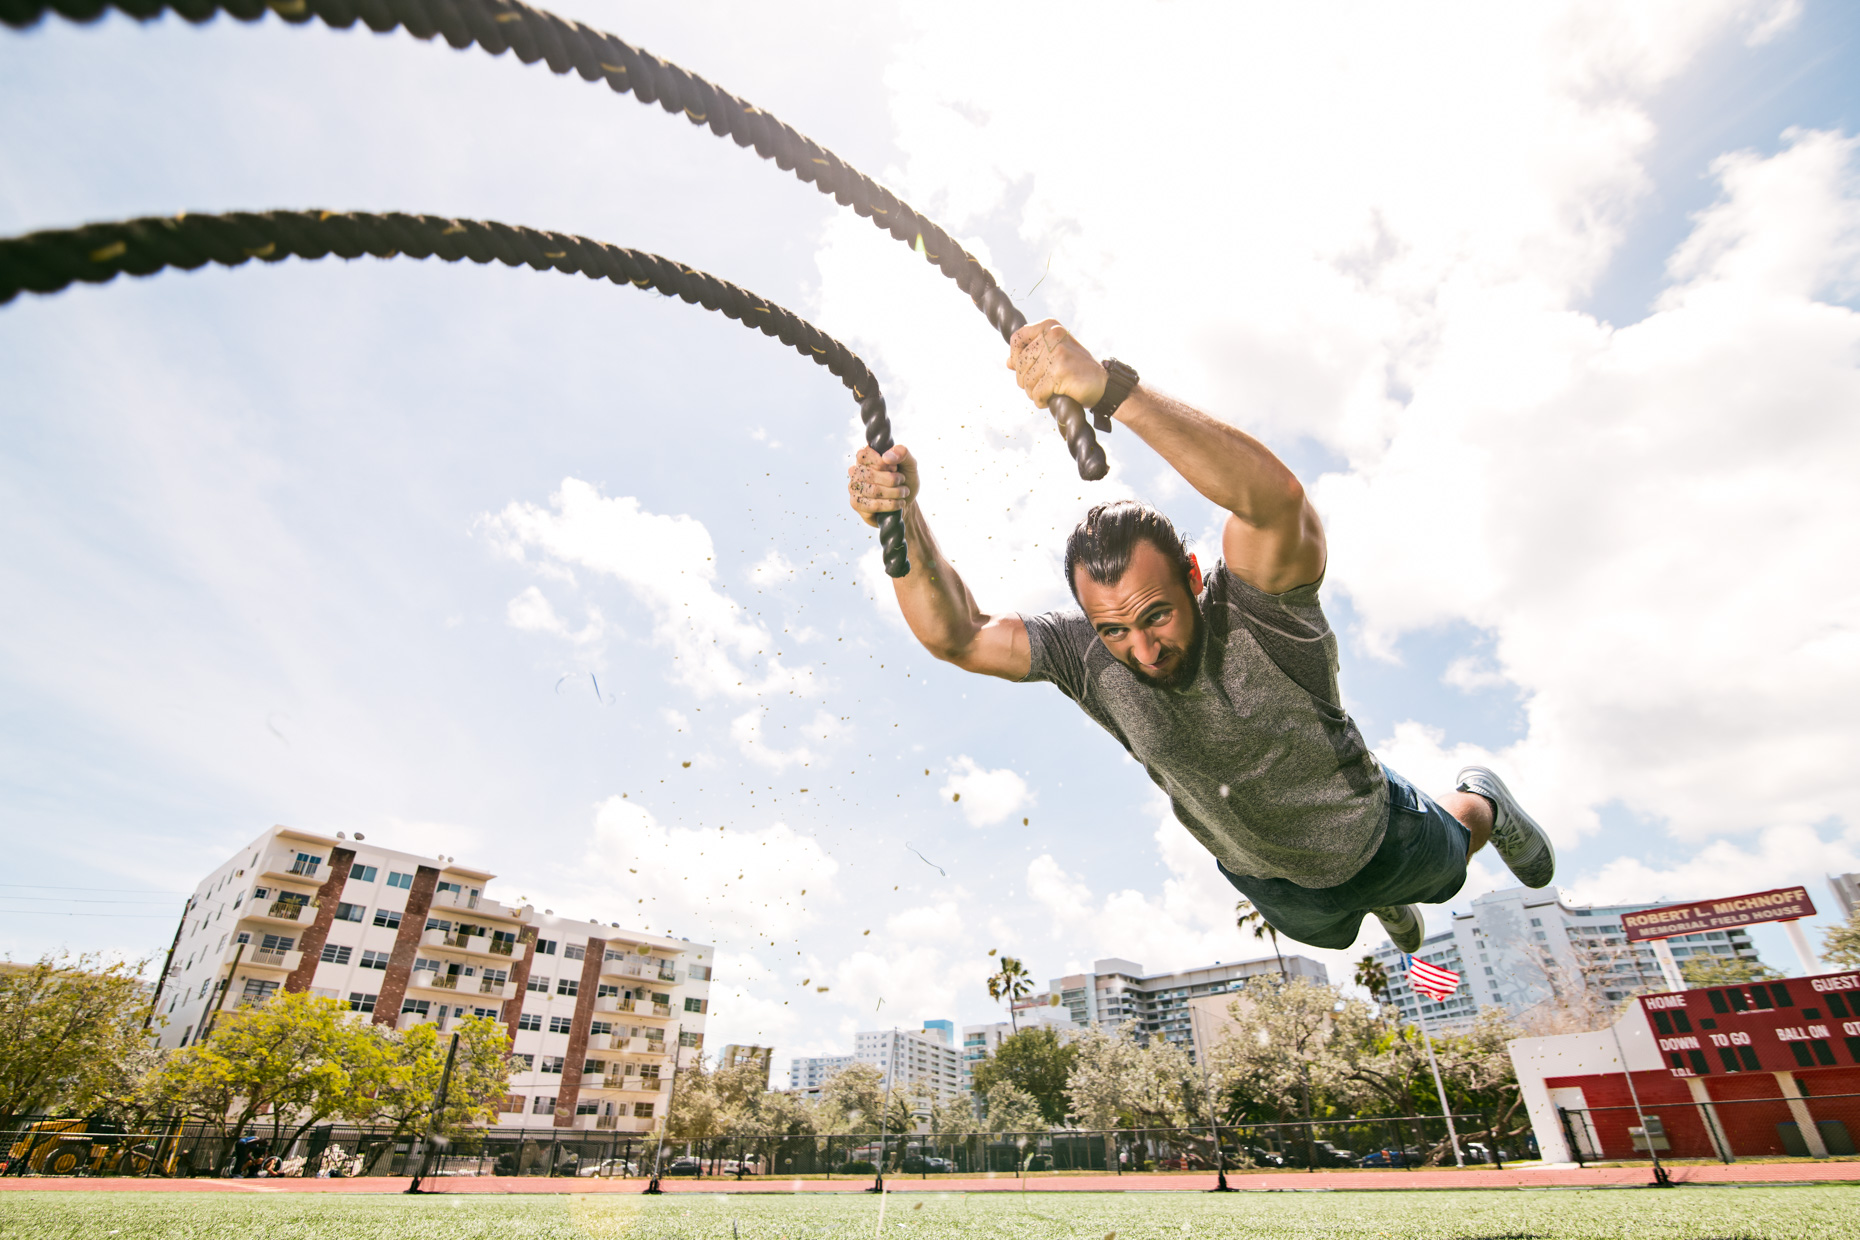 Anthony Mendez - Superman battle ropes - James Woodley Photography - Miami Fitness Photographer